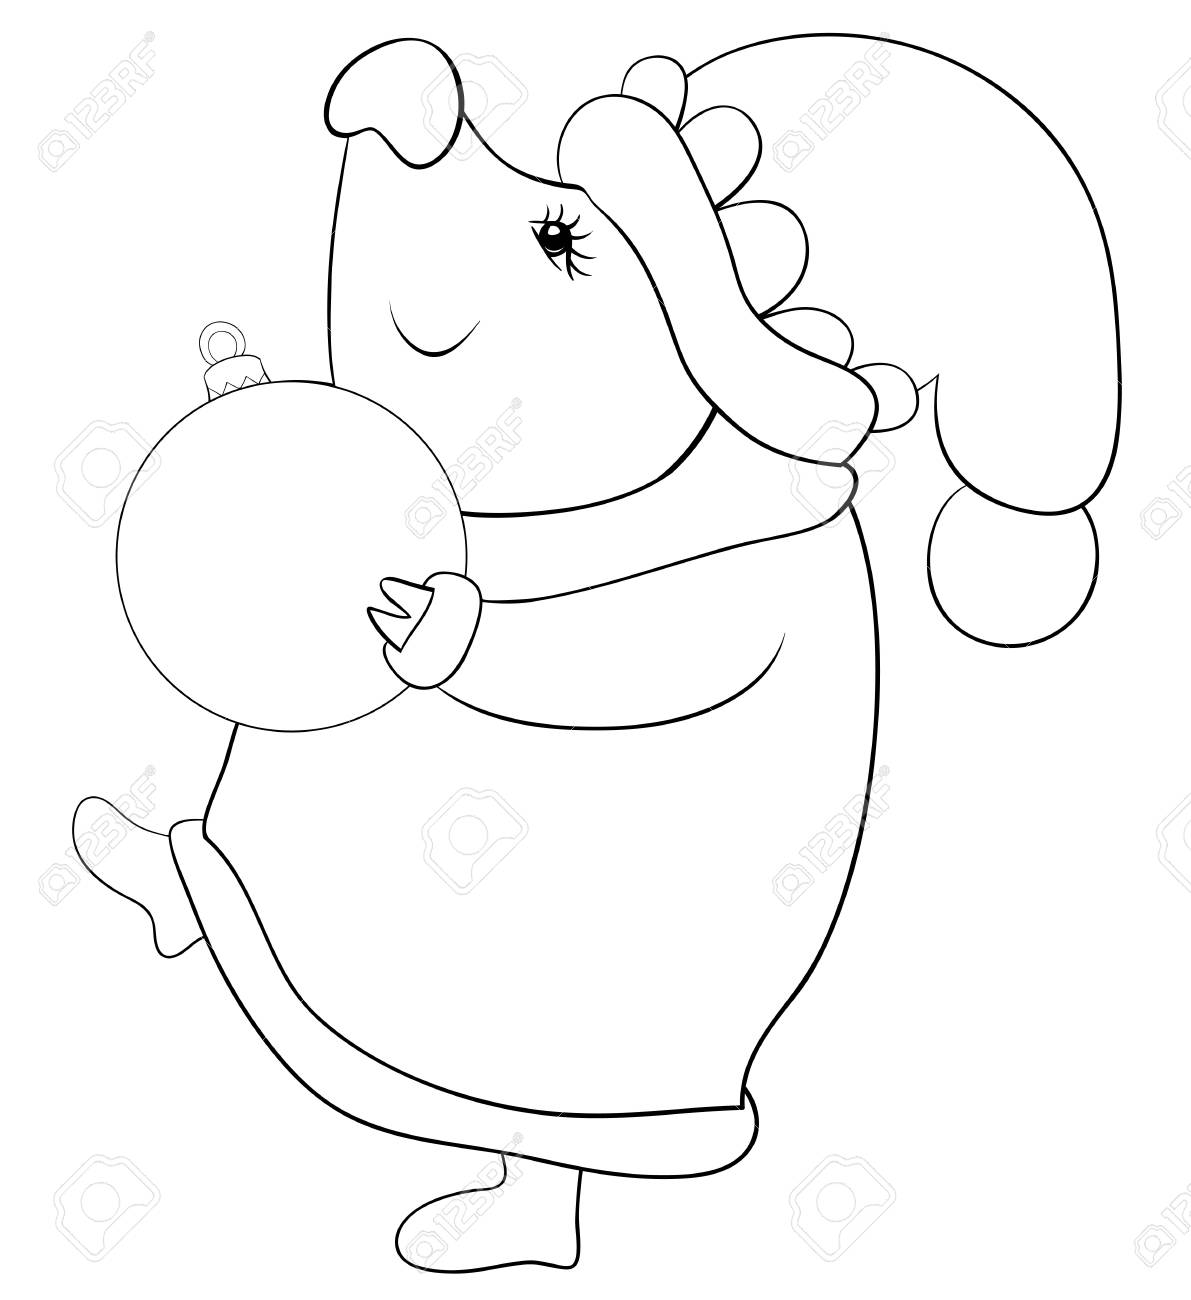 Christmas Boots Drawing.A Cartoon Pig Wearing A Christmas Cap Scarf Waistcoat Gloves